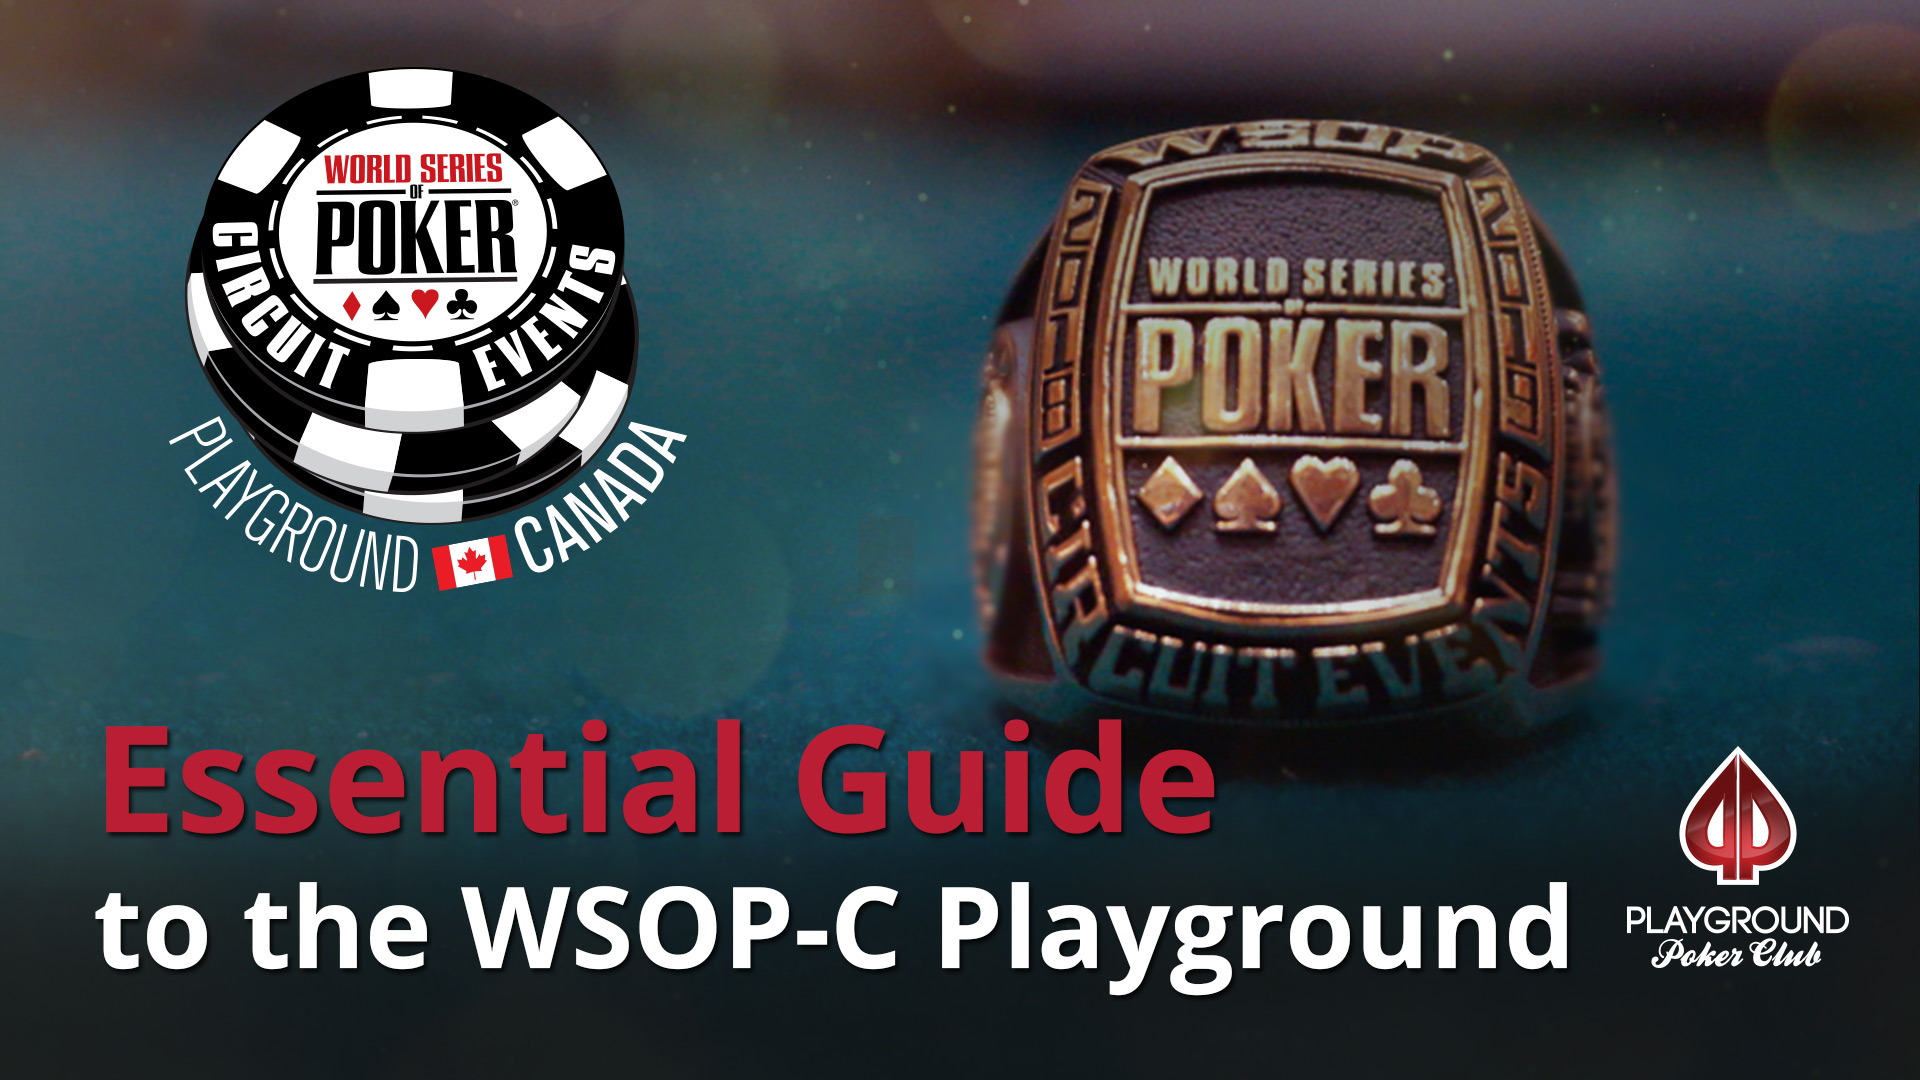 Essential Guide to the WSOP-C Playground